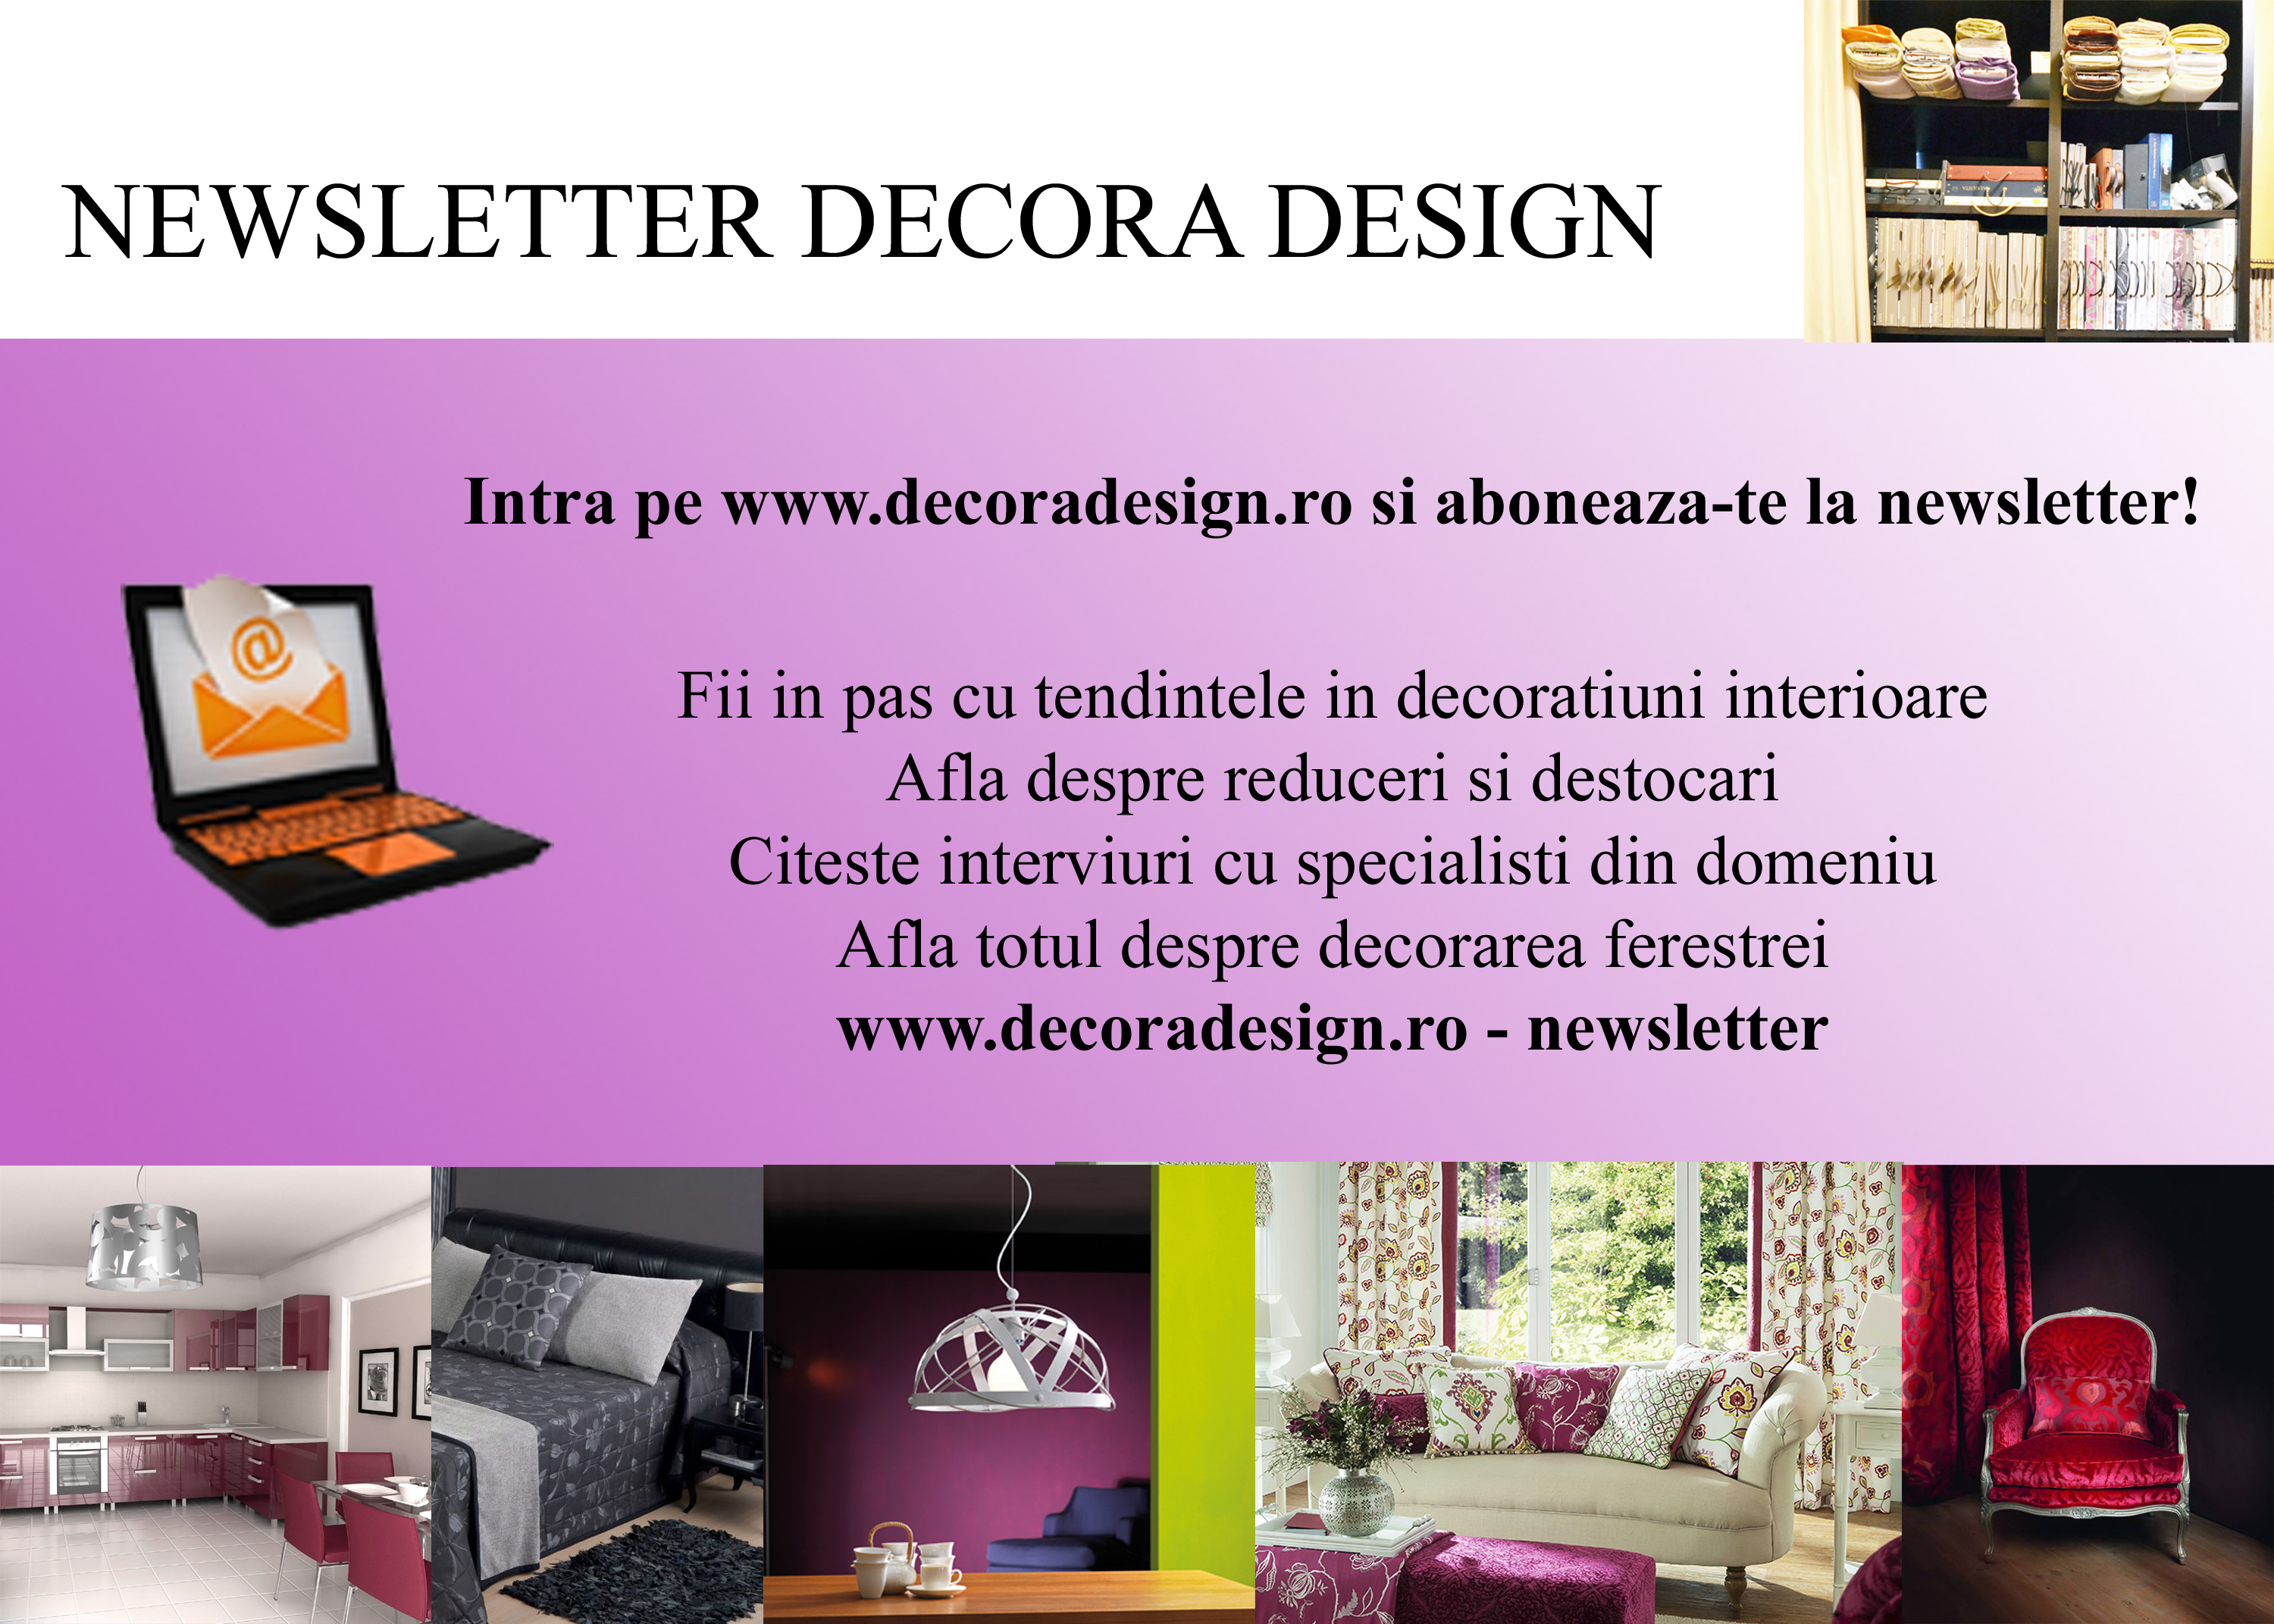 Aboneaza-te la newsletter-ul Decora Design!